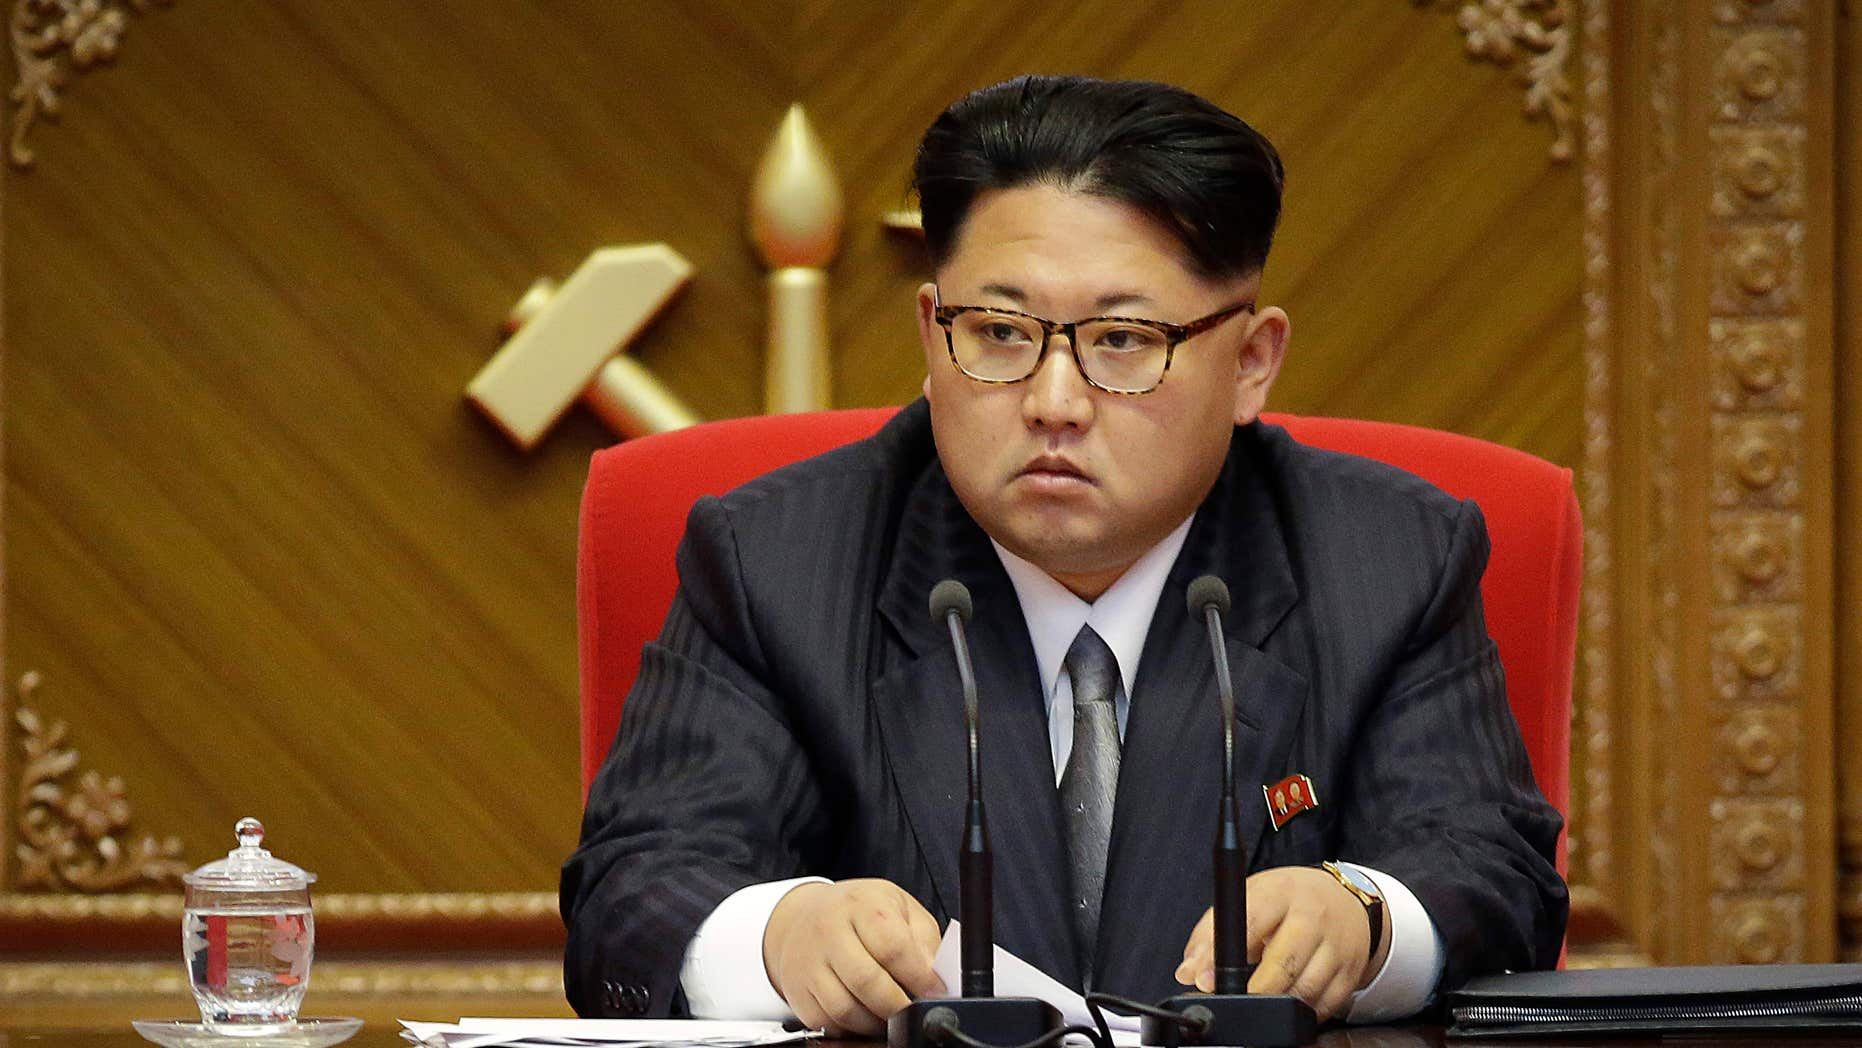 FILE - In this May 9, 2016 file photo, North Korean leader Kim Jong Un listens during the party congress in Pyongyang, North Korea.